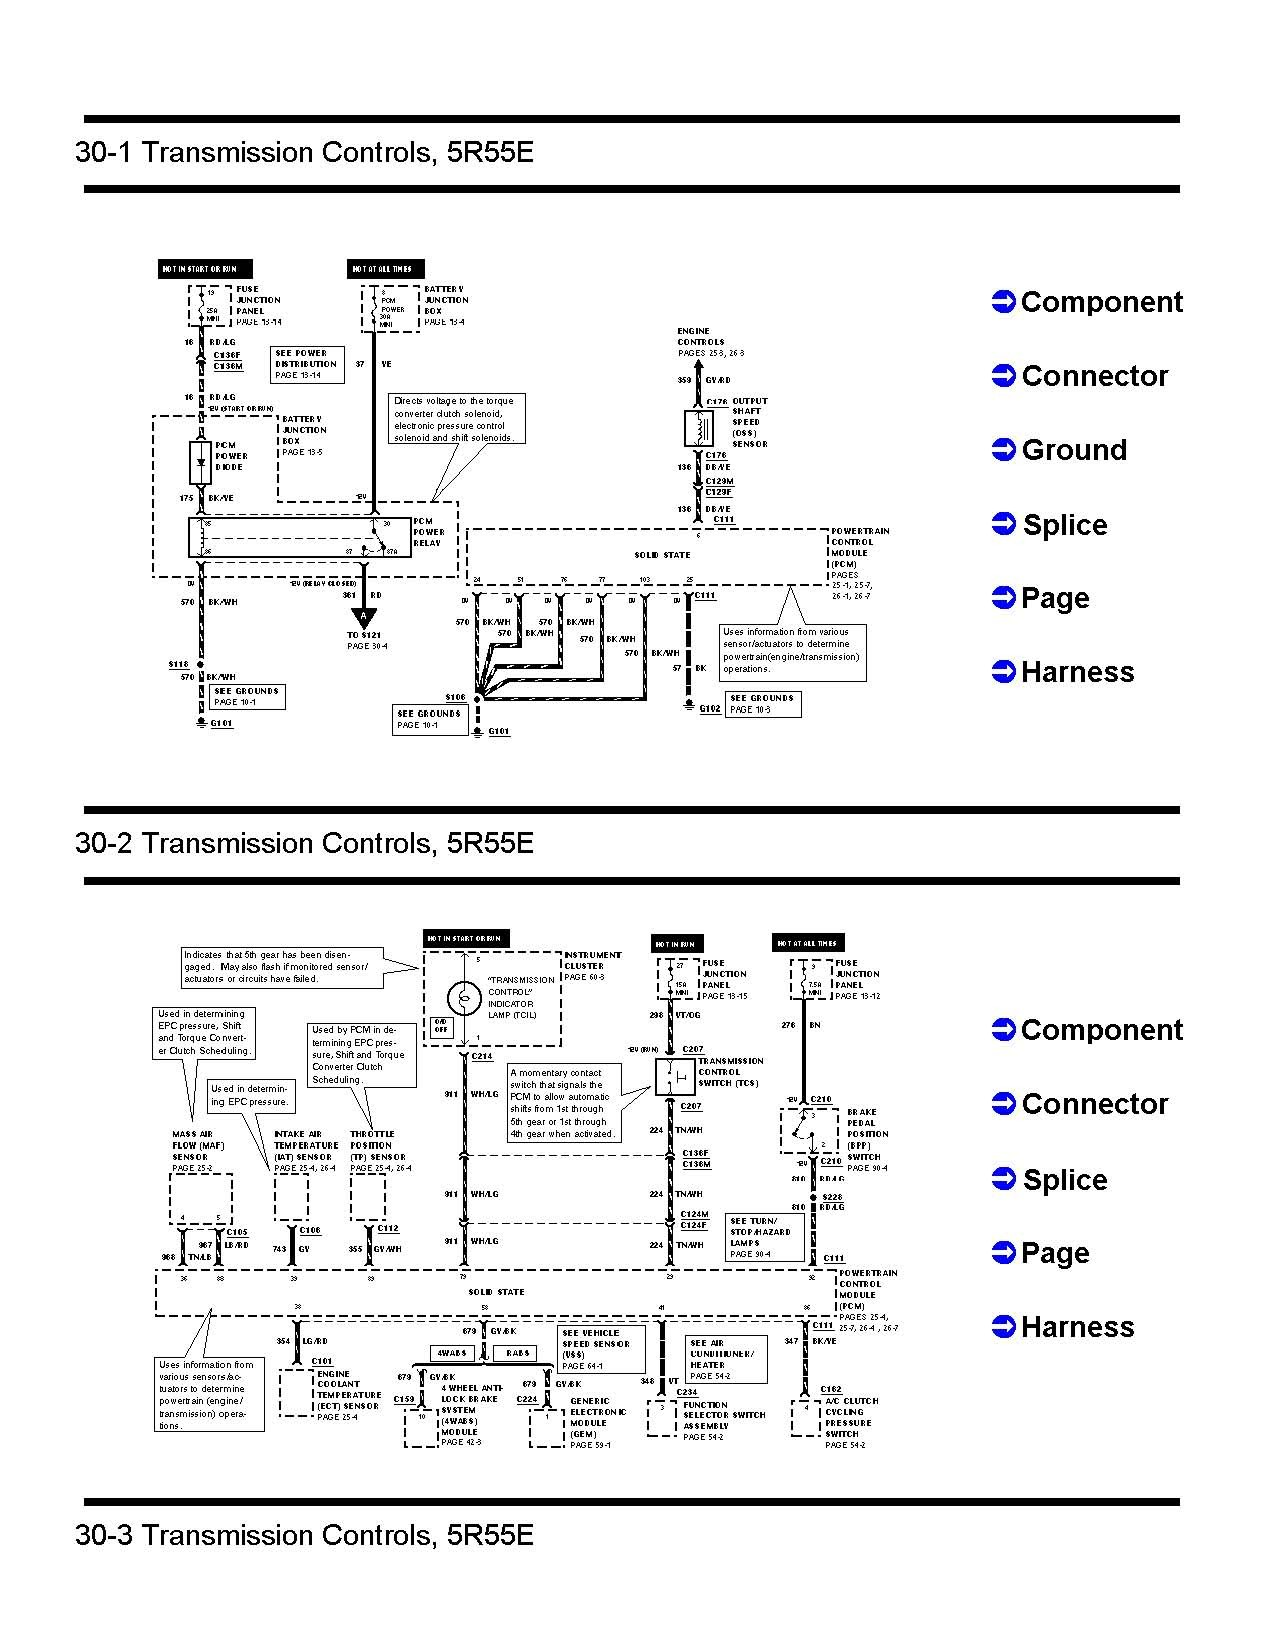 2002 ford ranger parts diagram 5r55e wiring diagram wiring diagram rh detoxicrecenze com Ford 5R55E Transmission Diagram 5R55E Transmission Rebuilding Exploded-View